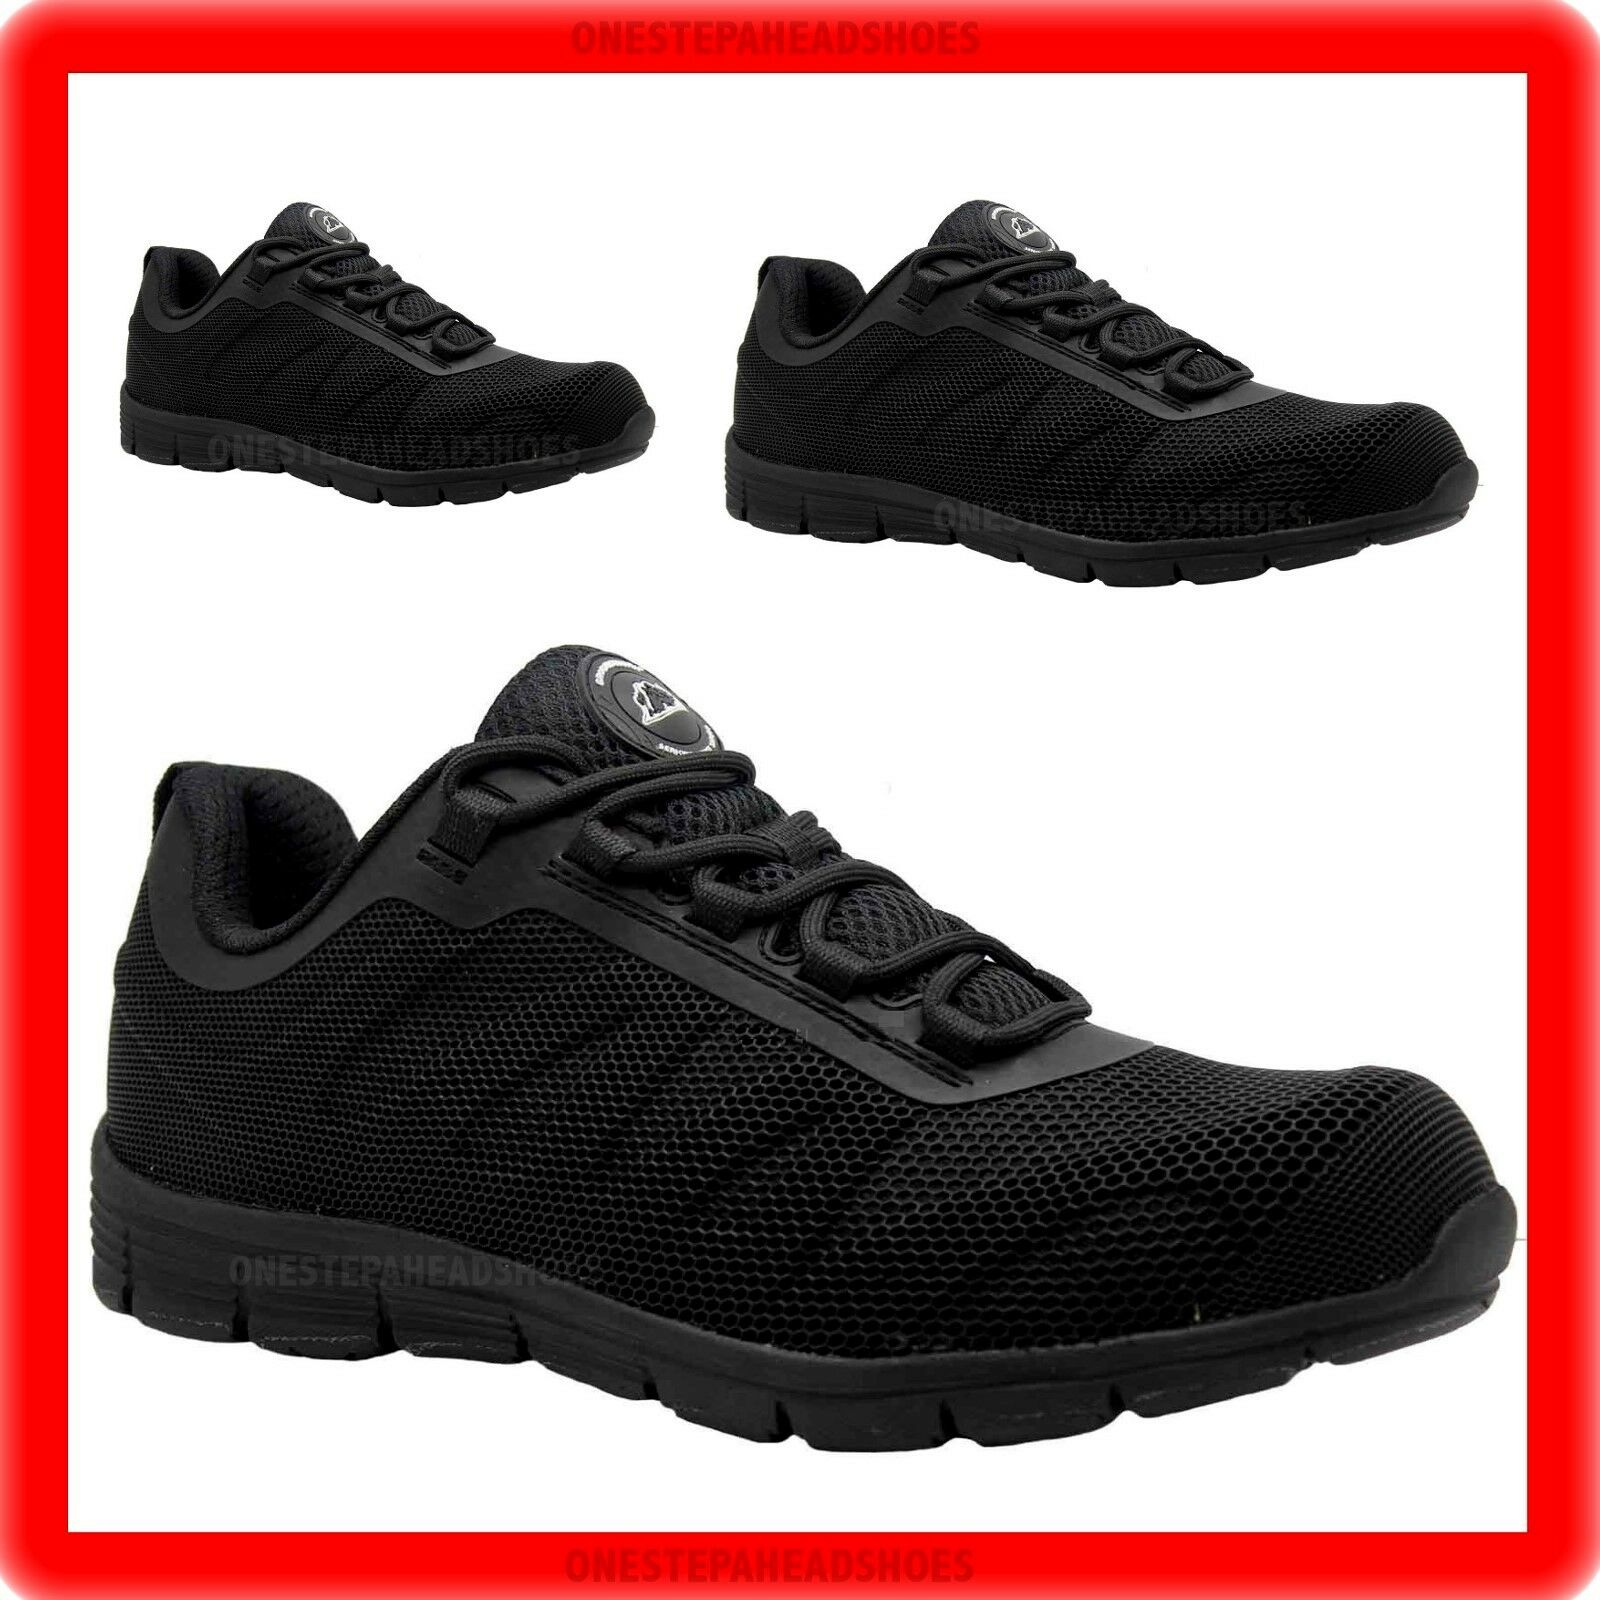 NEW MENS  ULTRA LIGHTWEIGHT STEEL TOE CAP SAFETY TRAINER SHOES WORK SIZE UK 8